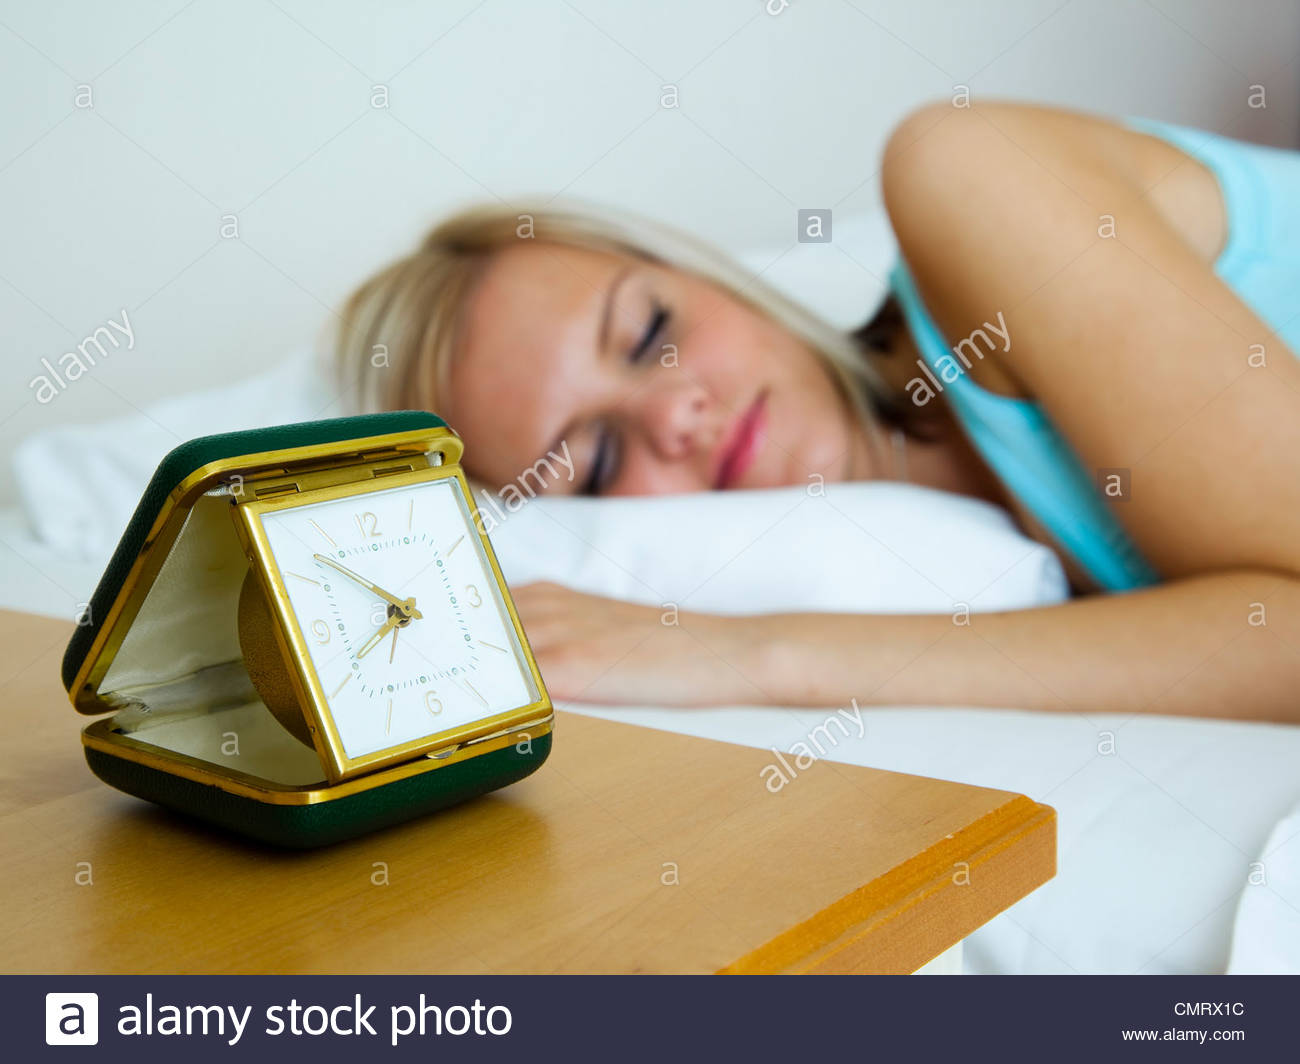 Girl sleeping next to alarm clock - Stock Image